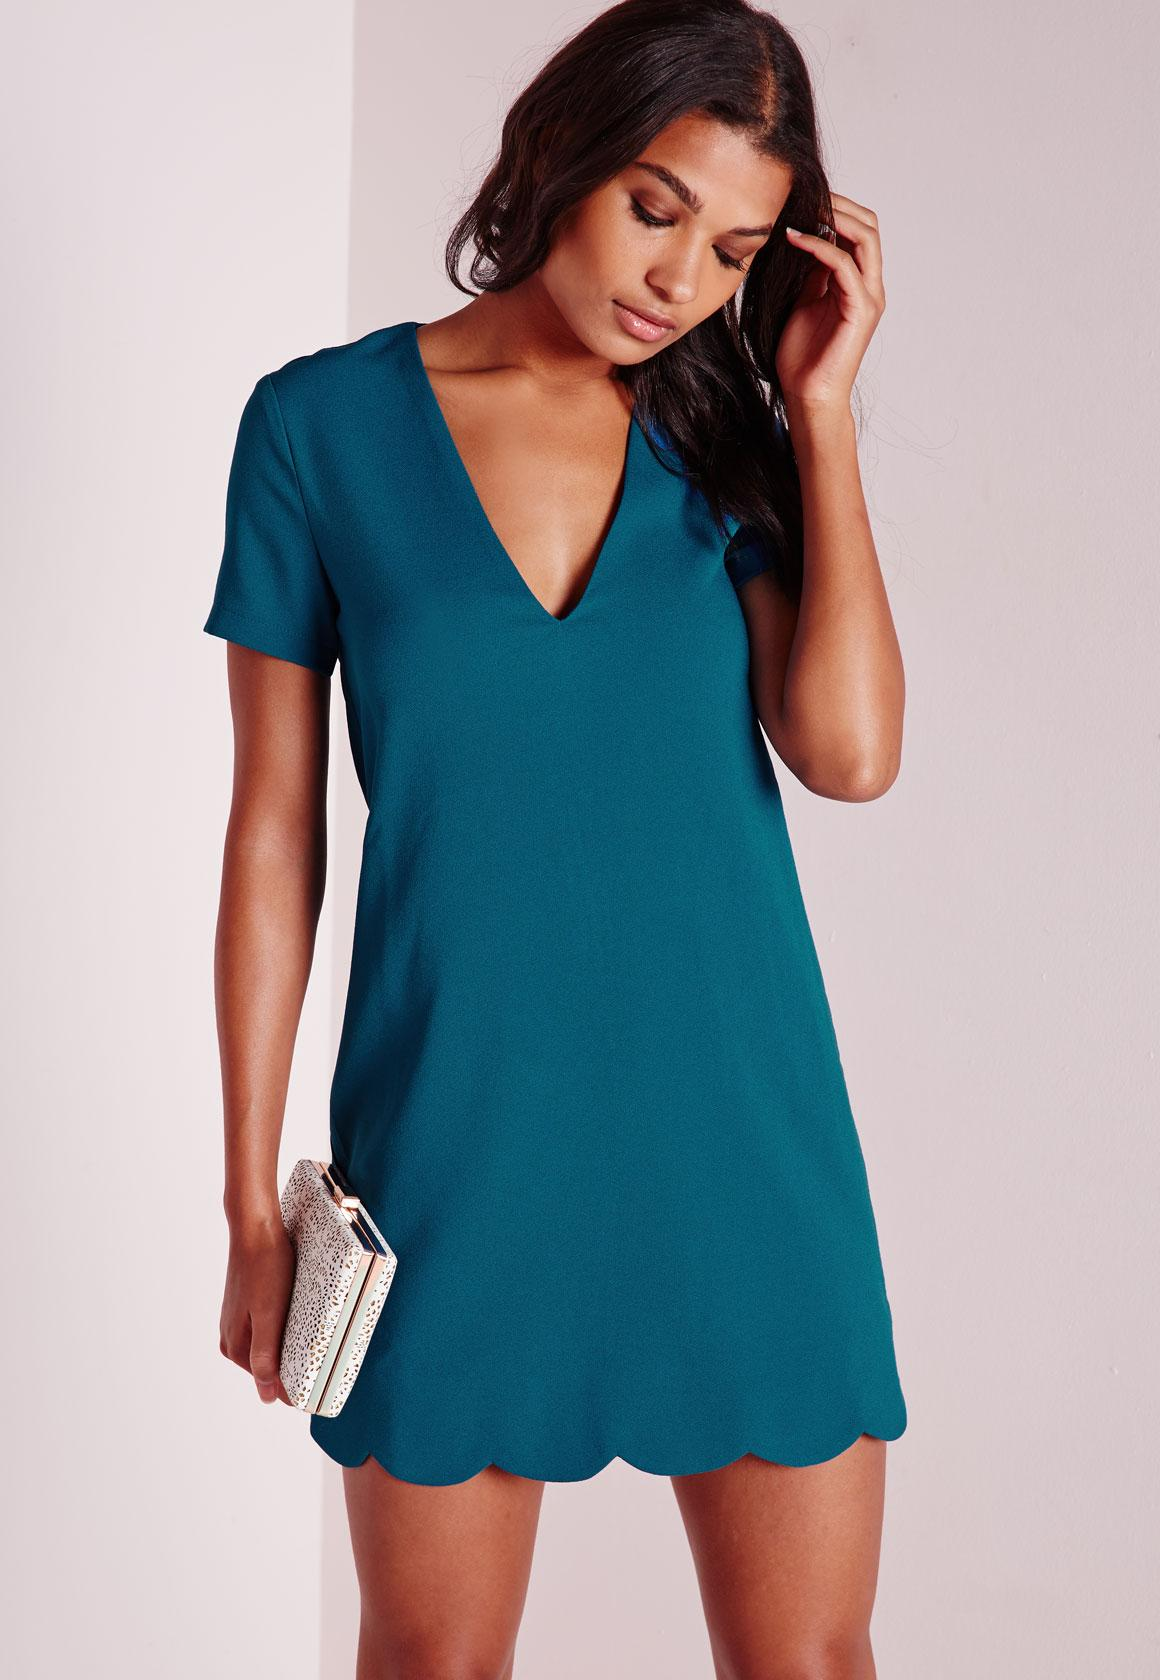 Crepe Cap Sleeve Scallop Hem Shift Dress Teal Blue | Missguided